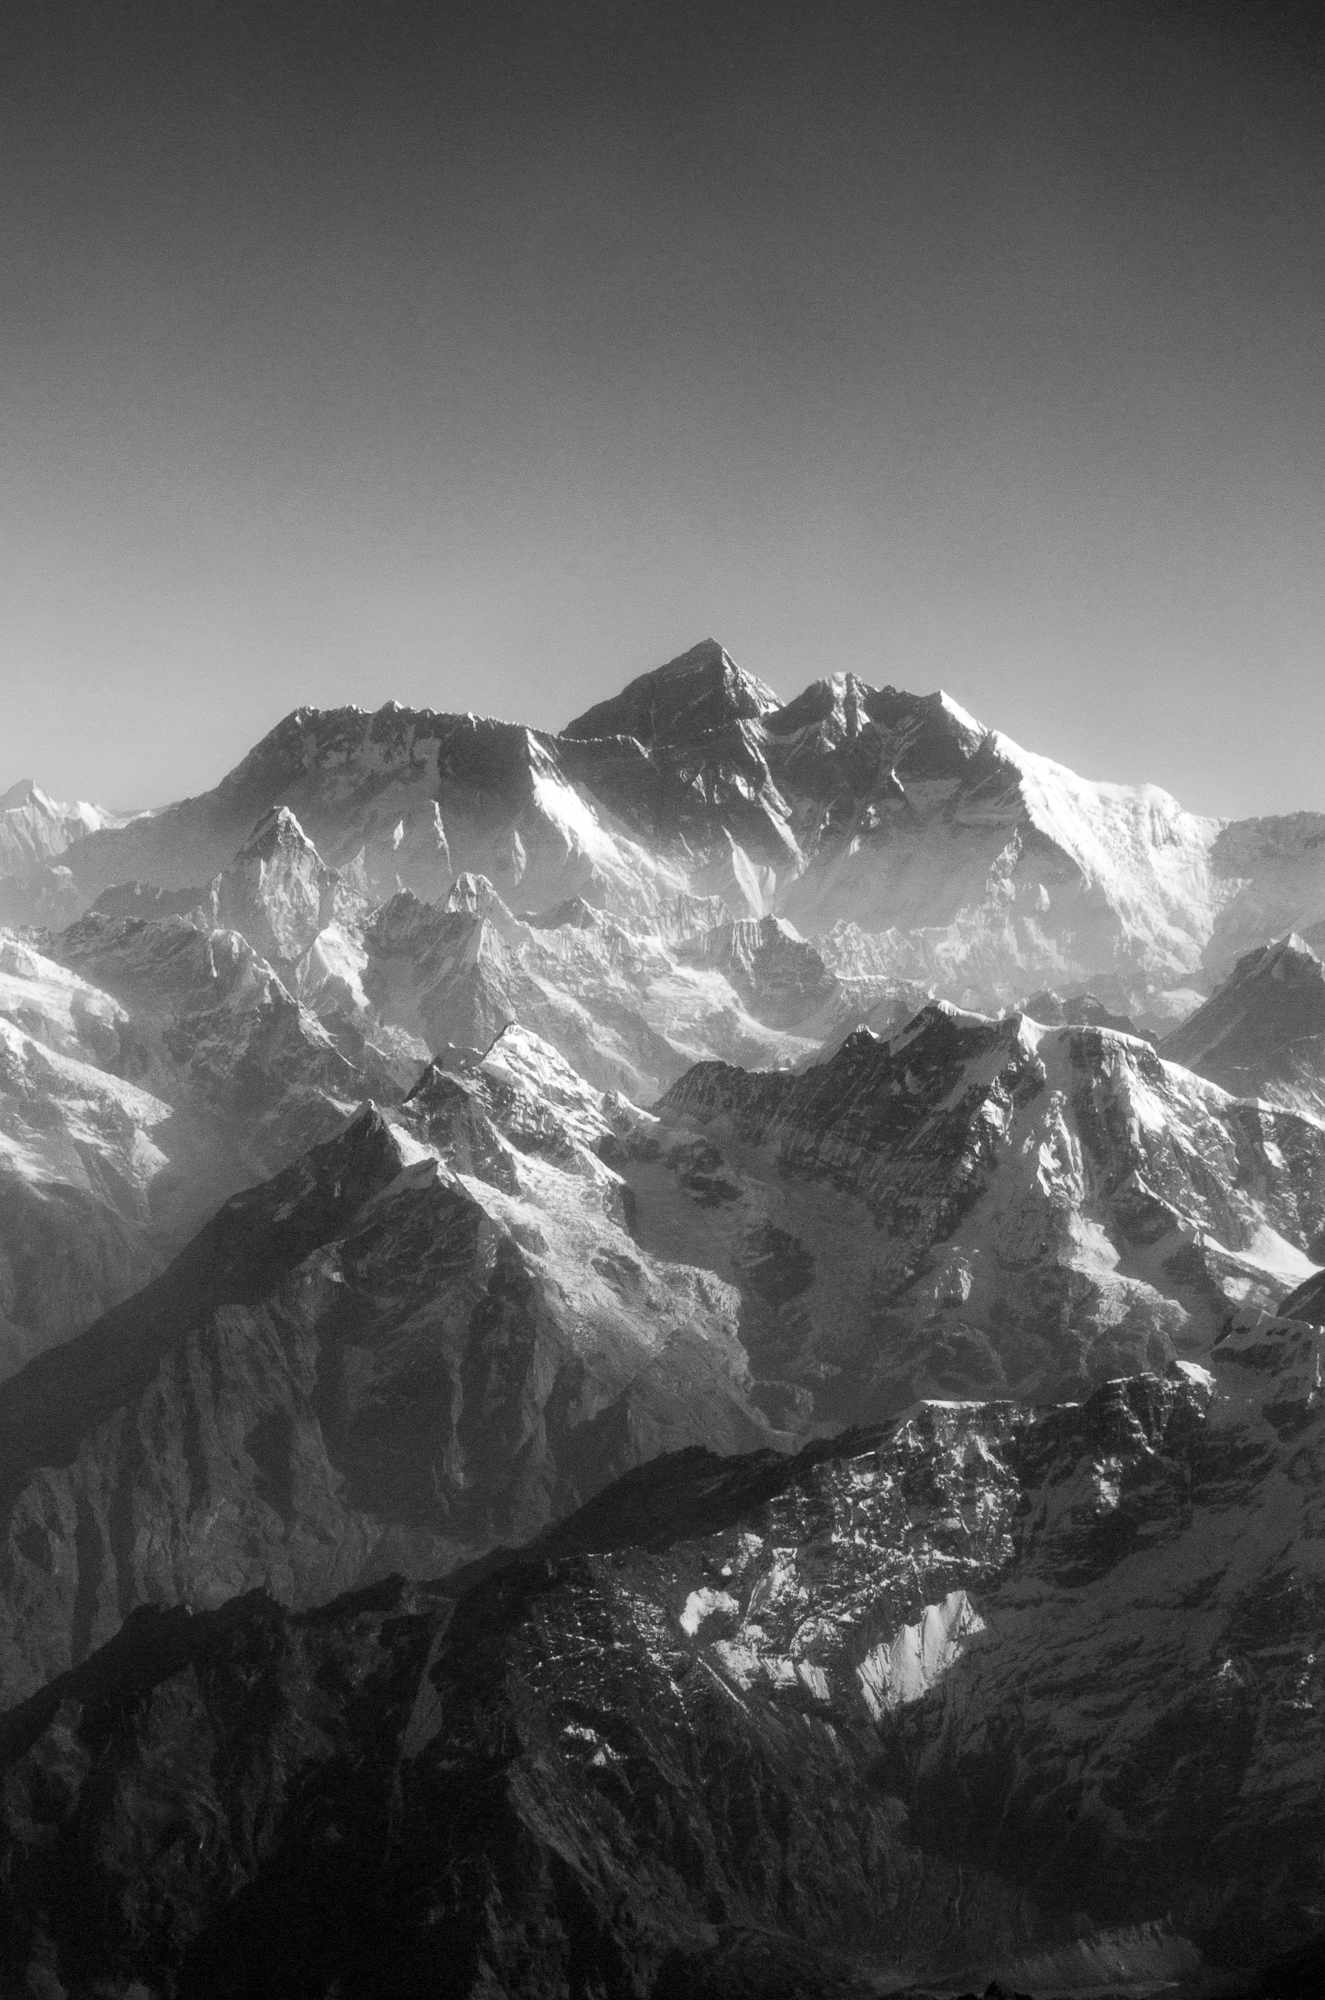 Mount Everest, Himalayas, Nepal